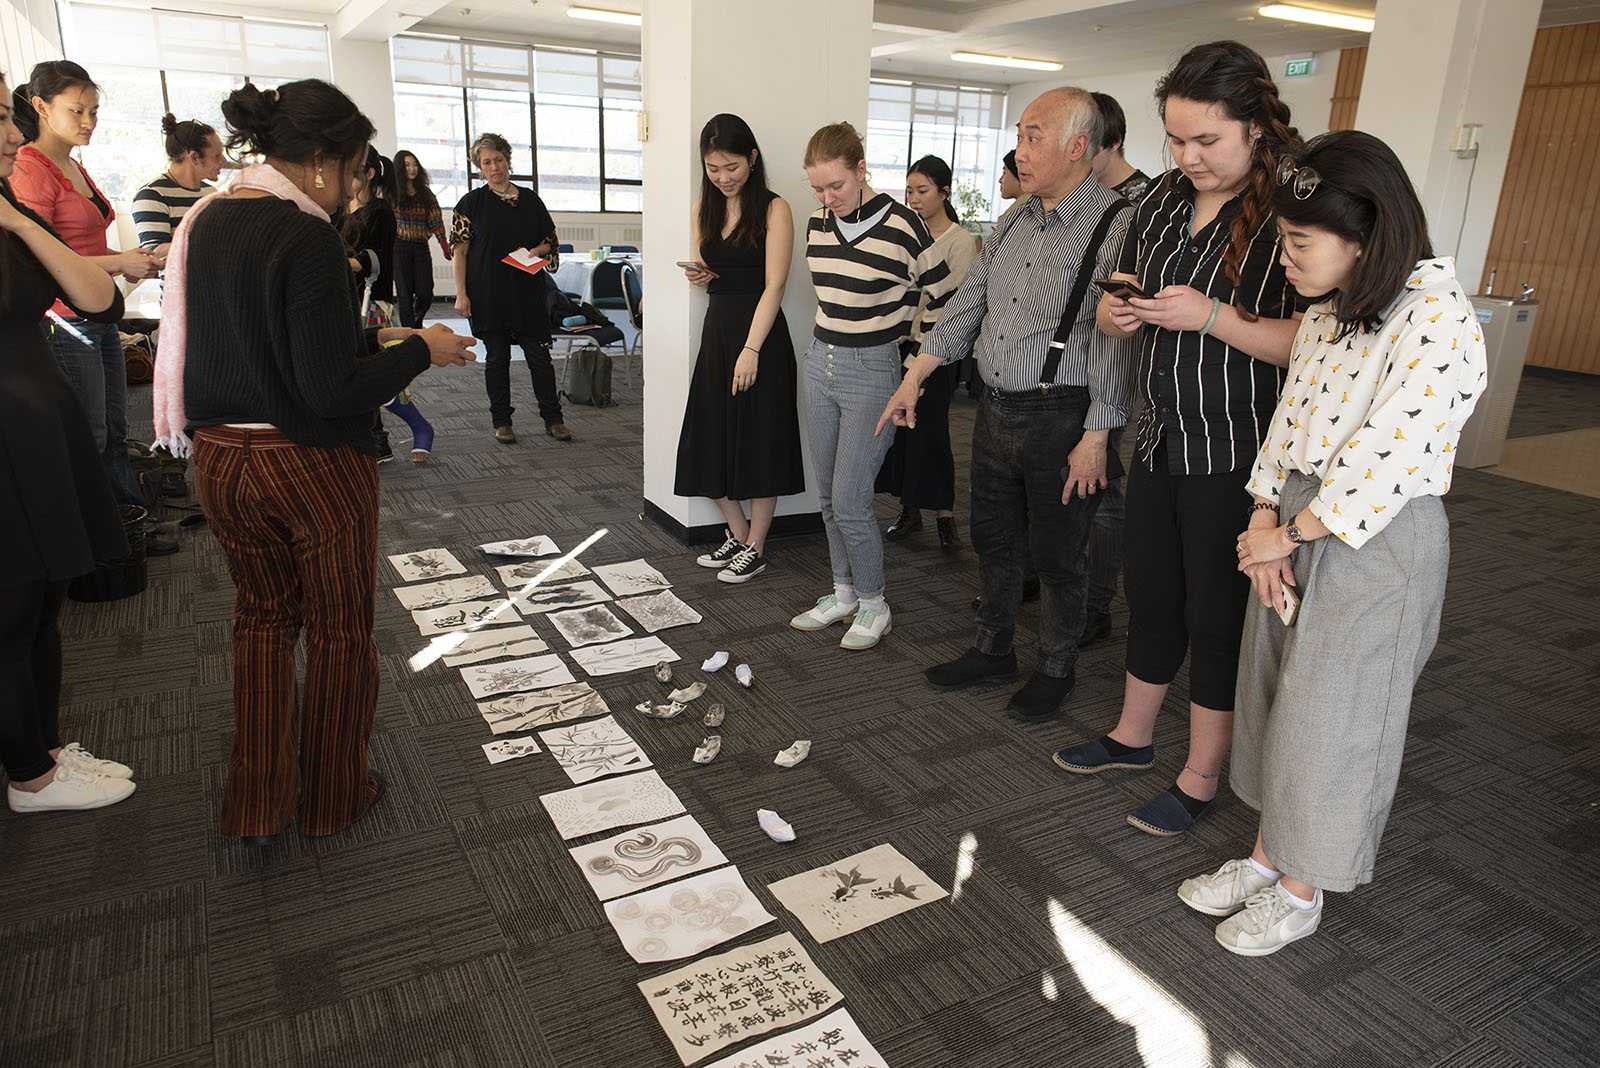 Master Class #1 Shaping Ink with Stan Chan and Yueyun Song, Massey University, 20 September 2018. Photo by John Lake